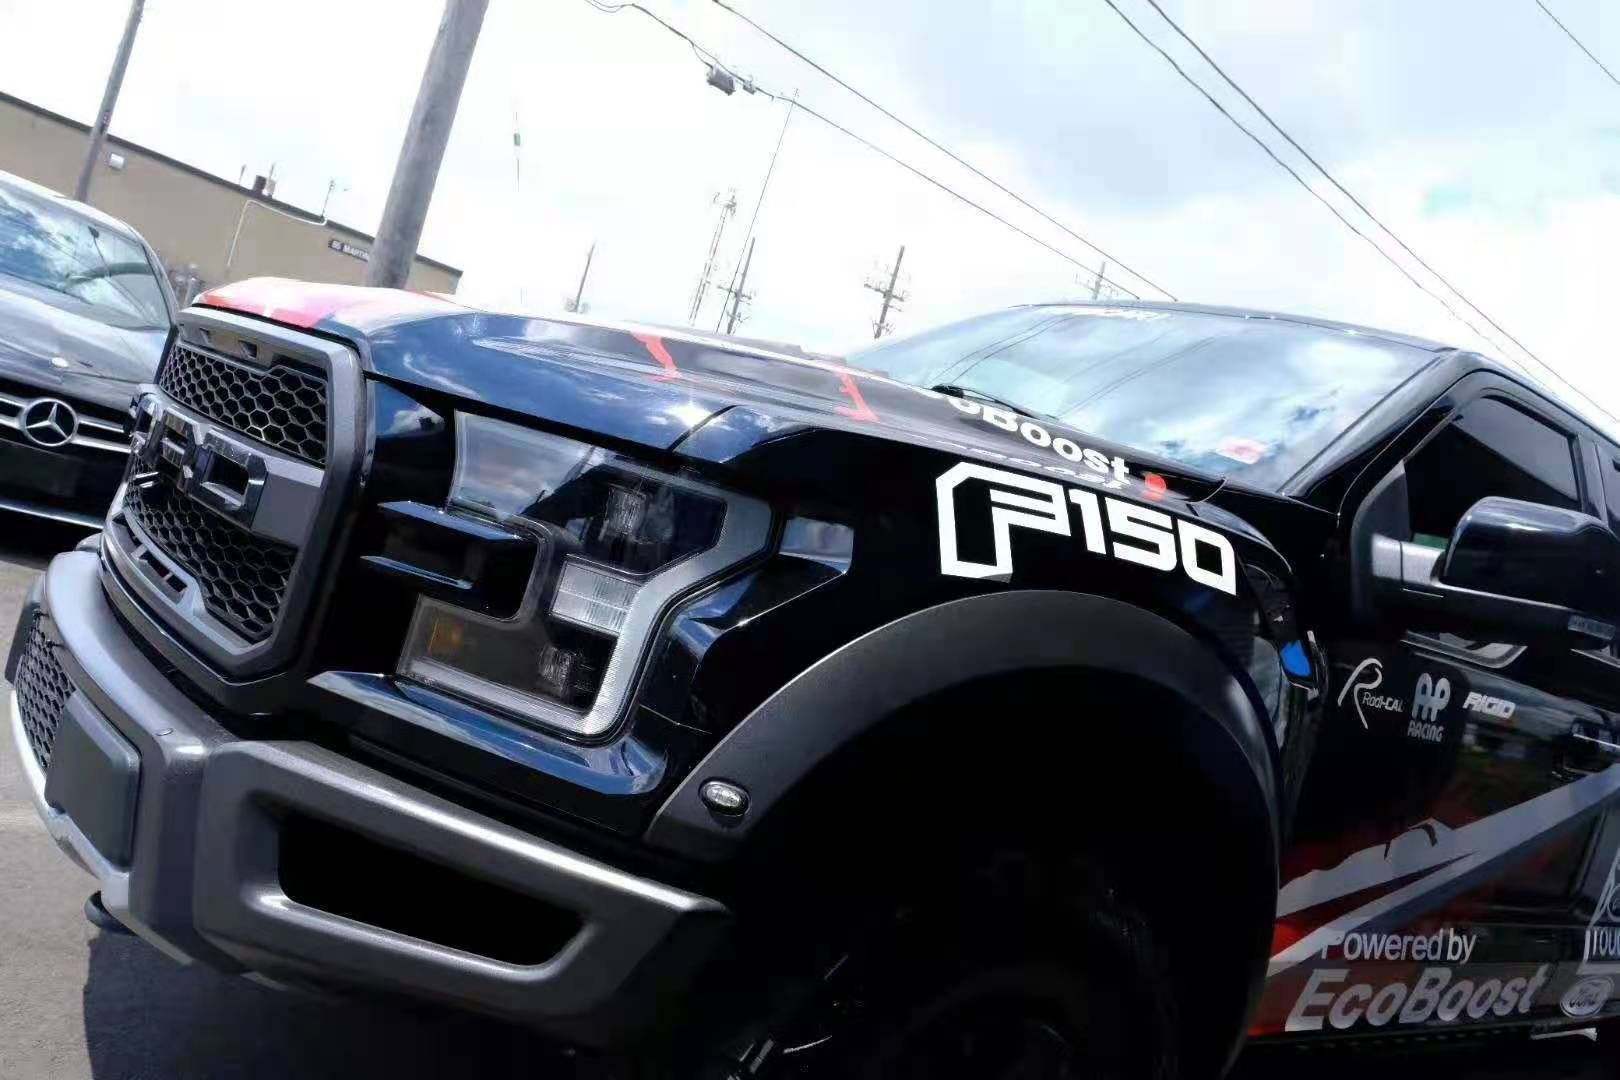 2019 Ford F-150 F150 4X4 SUPERCAB RAPTOR - INFOCAR - Toronto's Most Comprehensive New and Used Auto Trading Platform